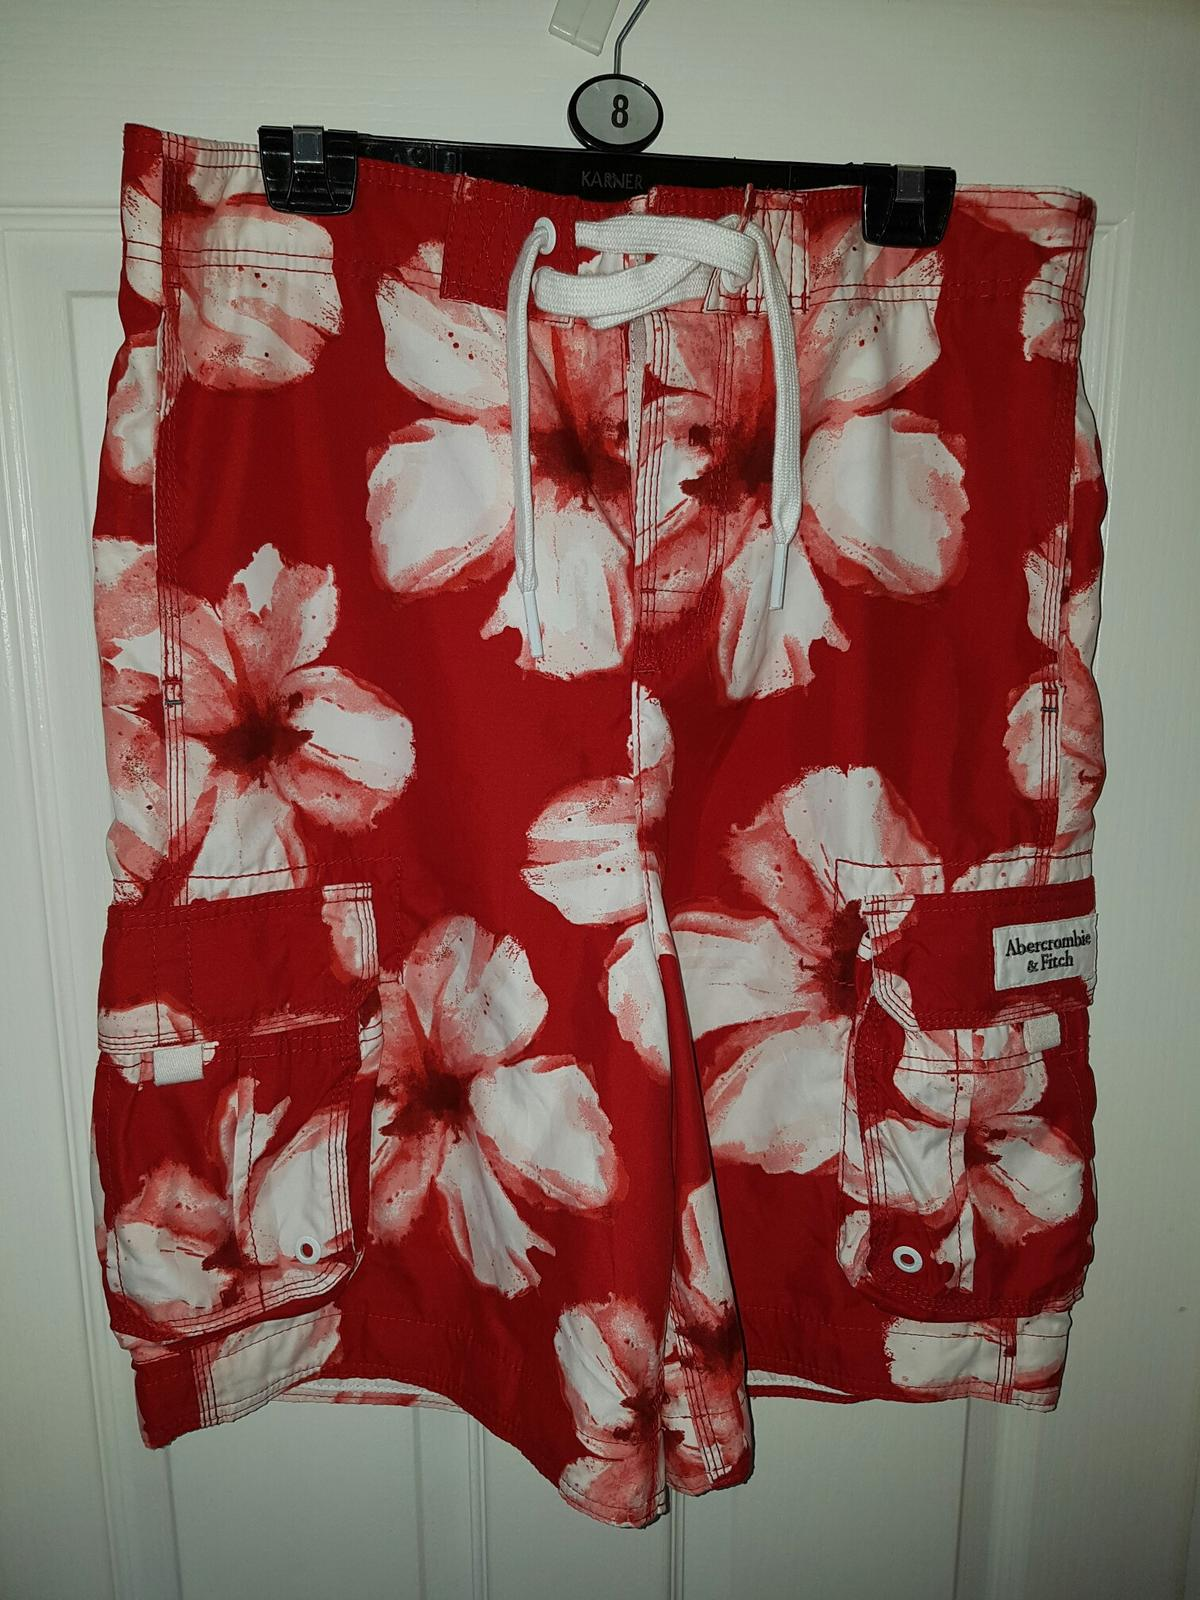 6fb448cb29 Abercrombie & Fitch Board Shorts - Large in S62 Rotherham for £2.50 ...